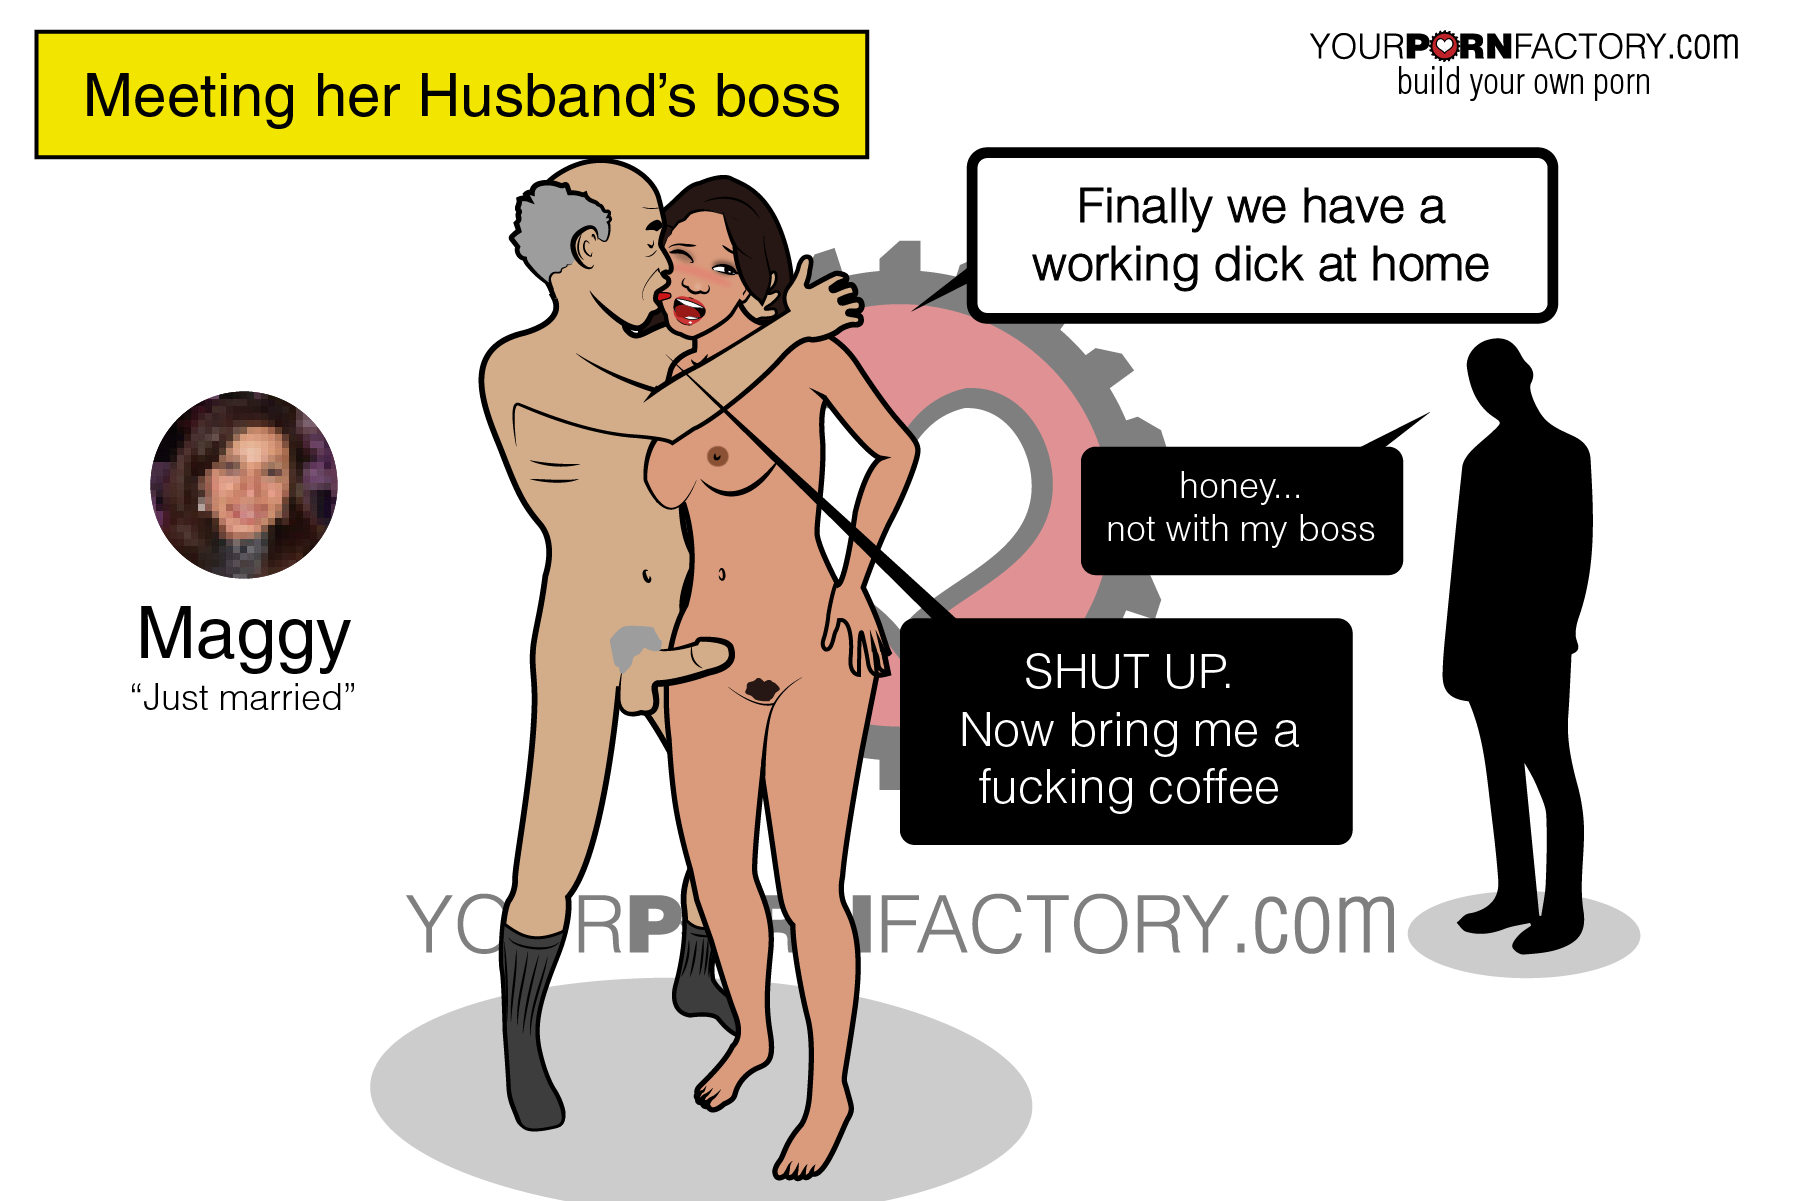 Why does your WIFE likes her job so much? cheating with her boss